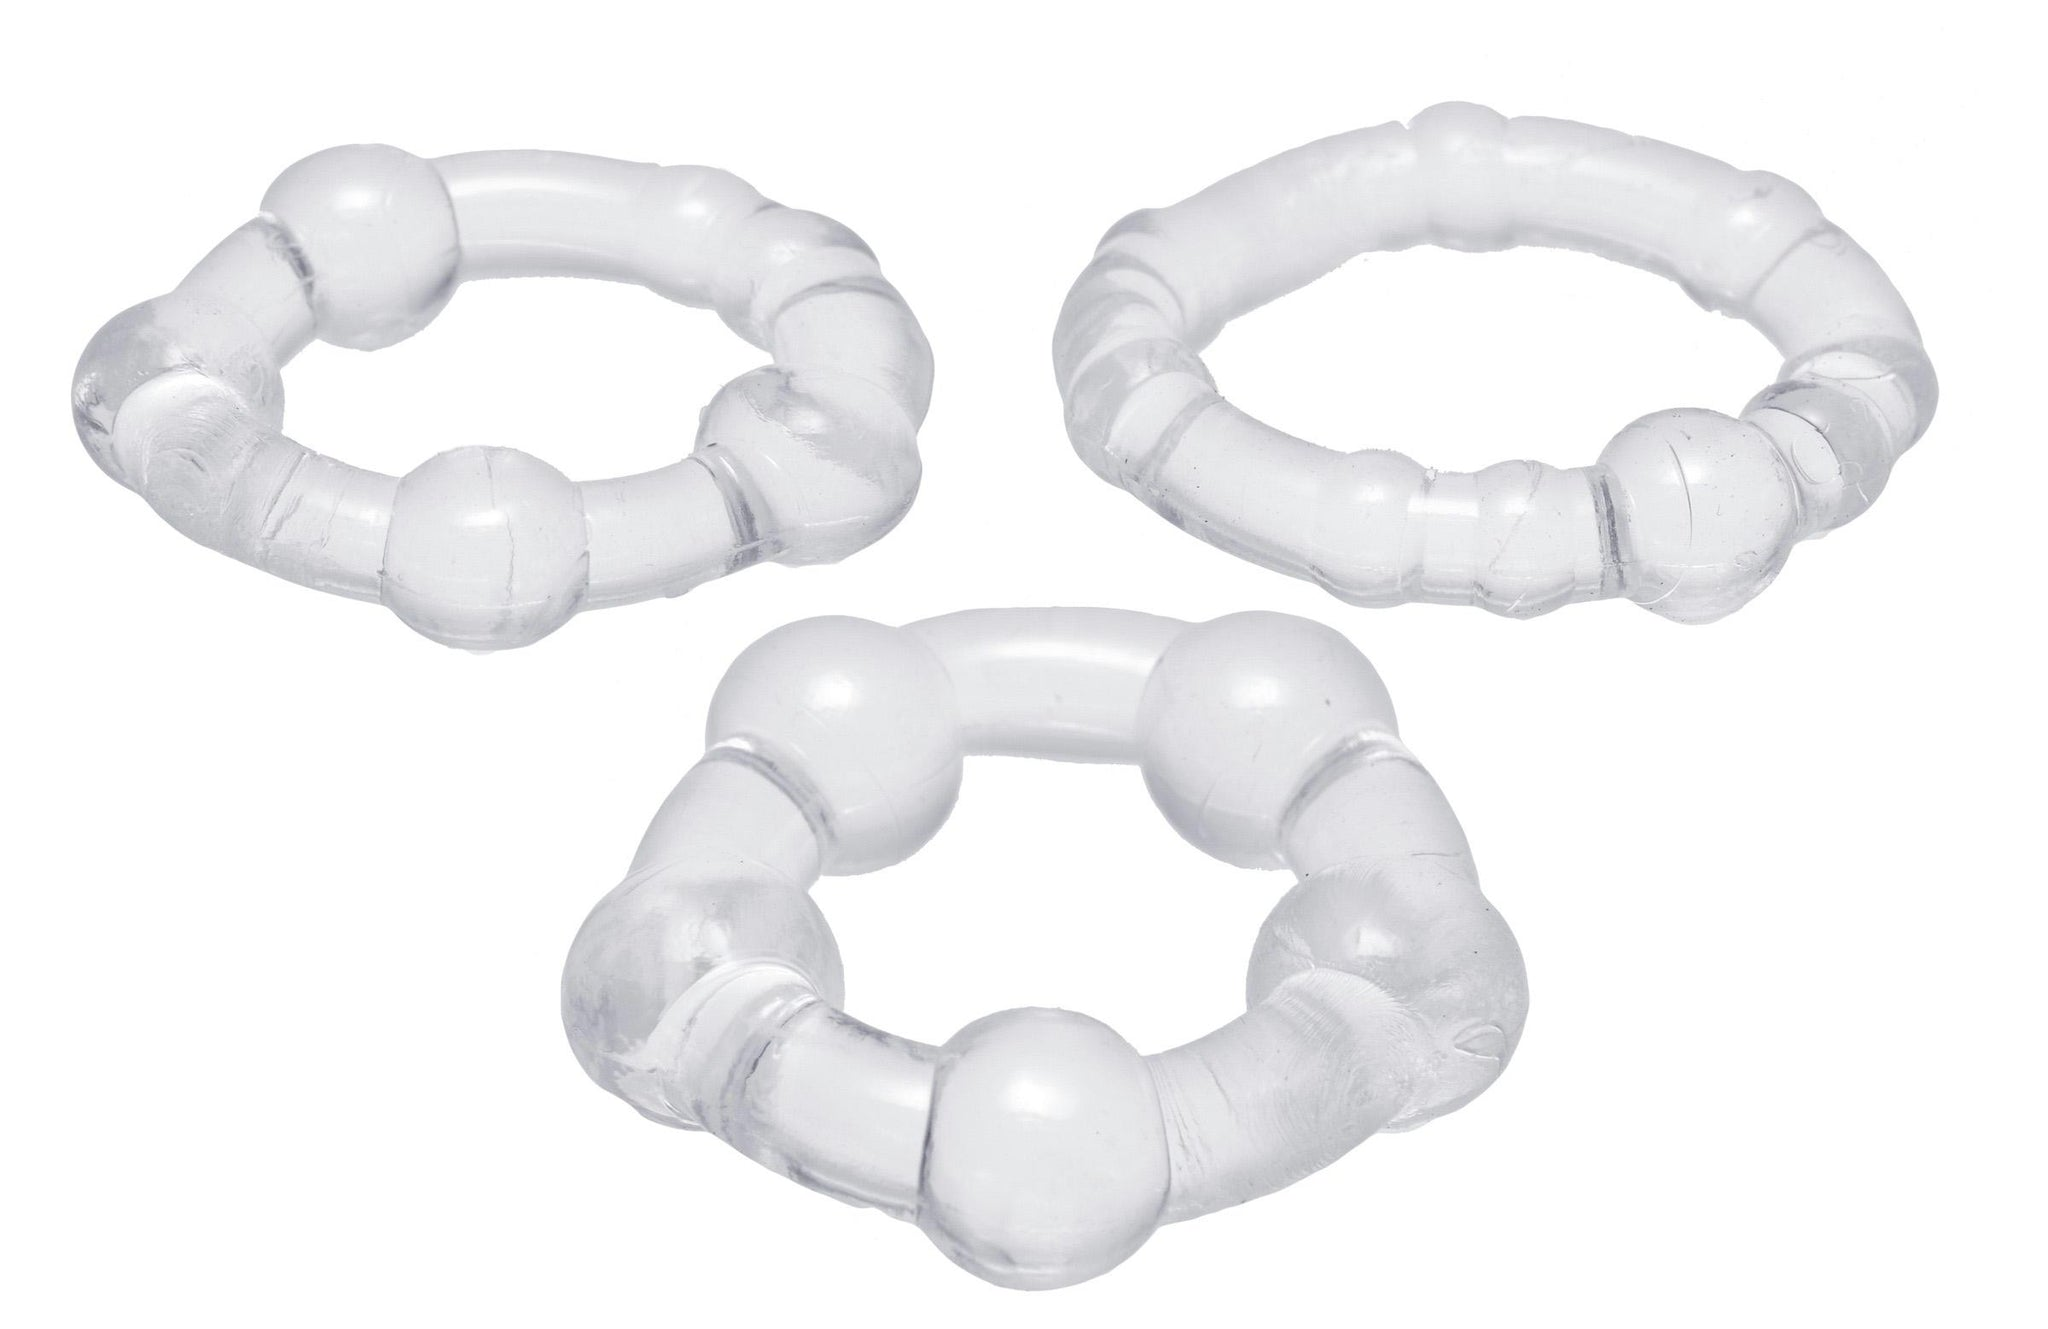 Clear Performance Erection Rings - Packaged